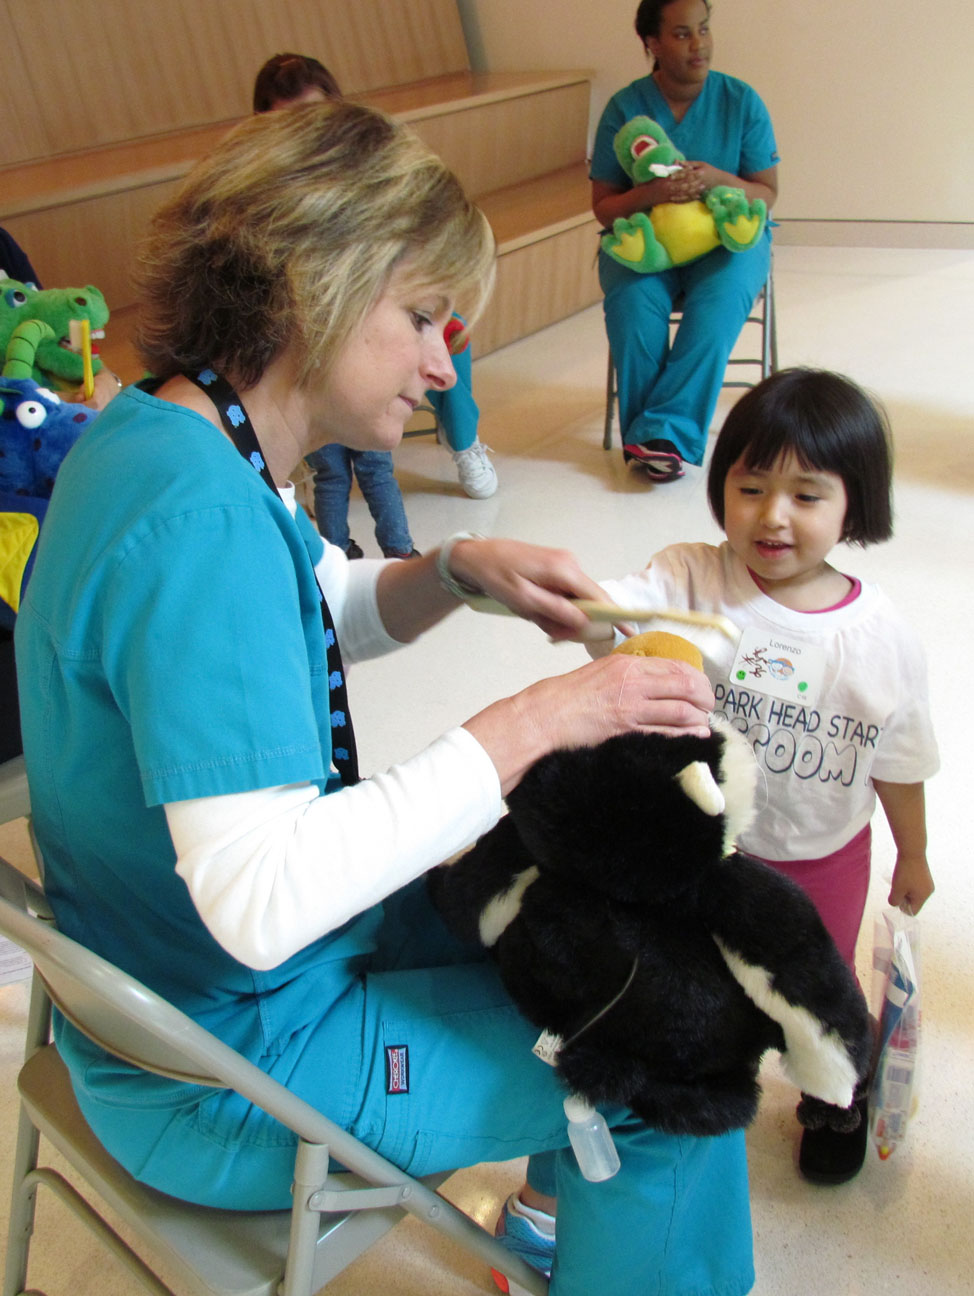 UNC School of Denistry student Jill Wilson shows Princess Lorenzo how to use proper brushing techniques. (Staff photo by Lynsay Williams)